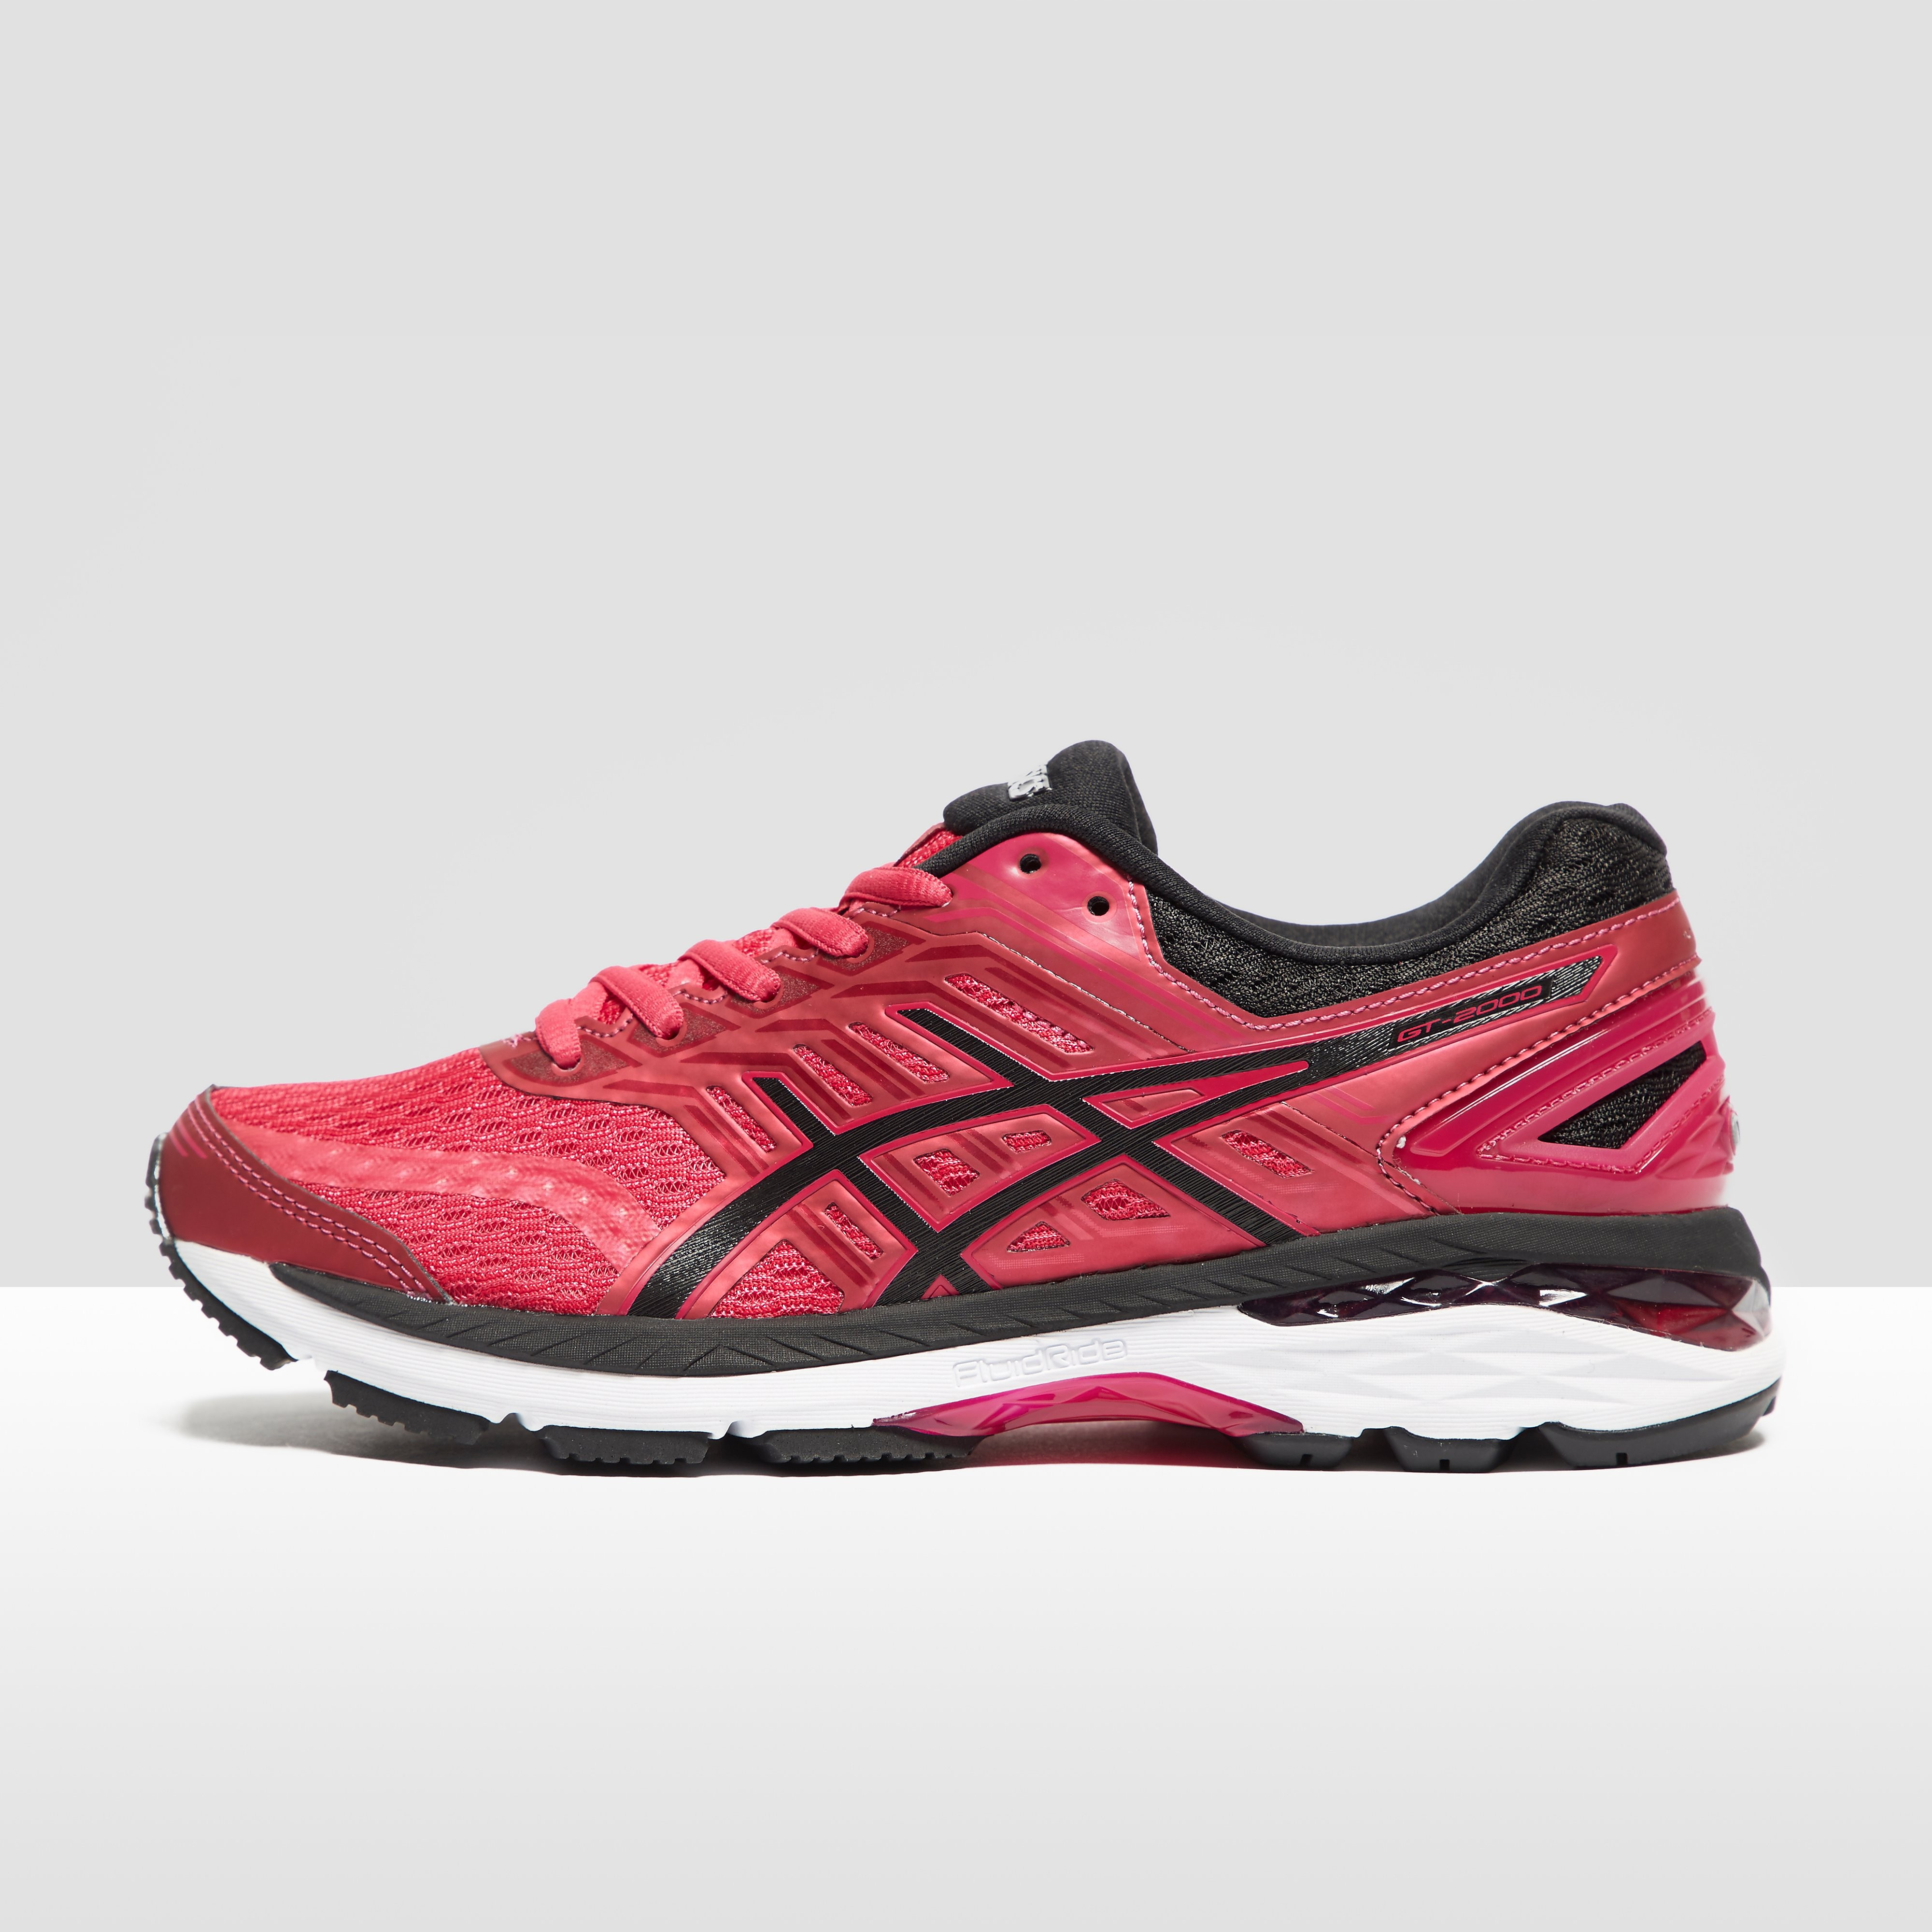 ASICS the GT-2000 Women's Running Shoes